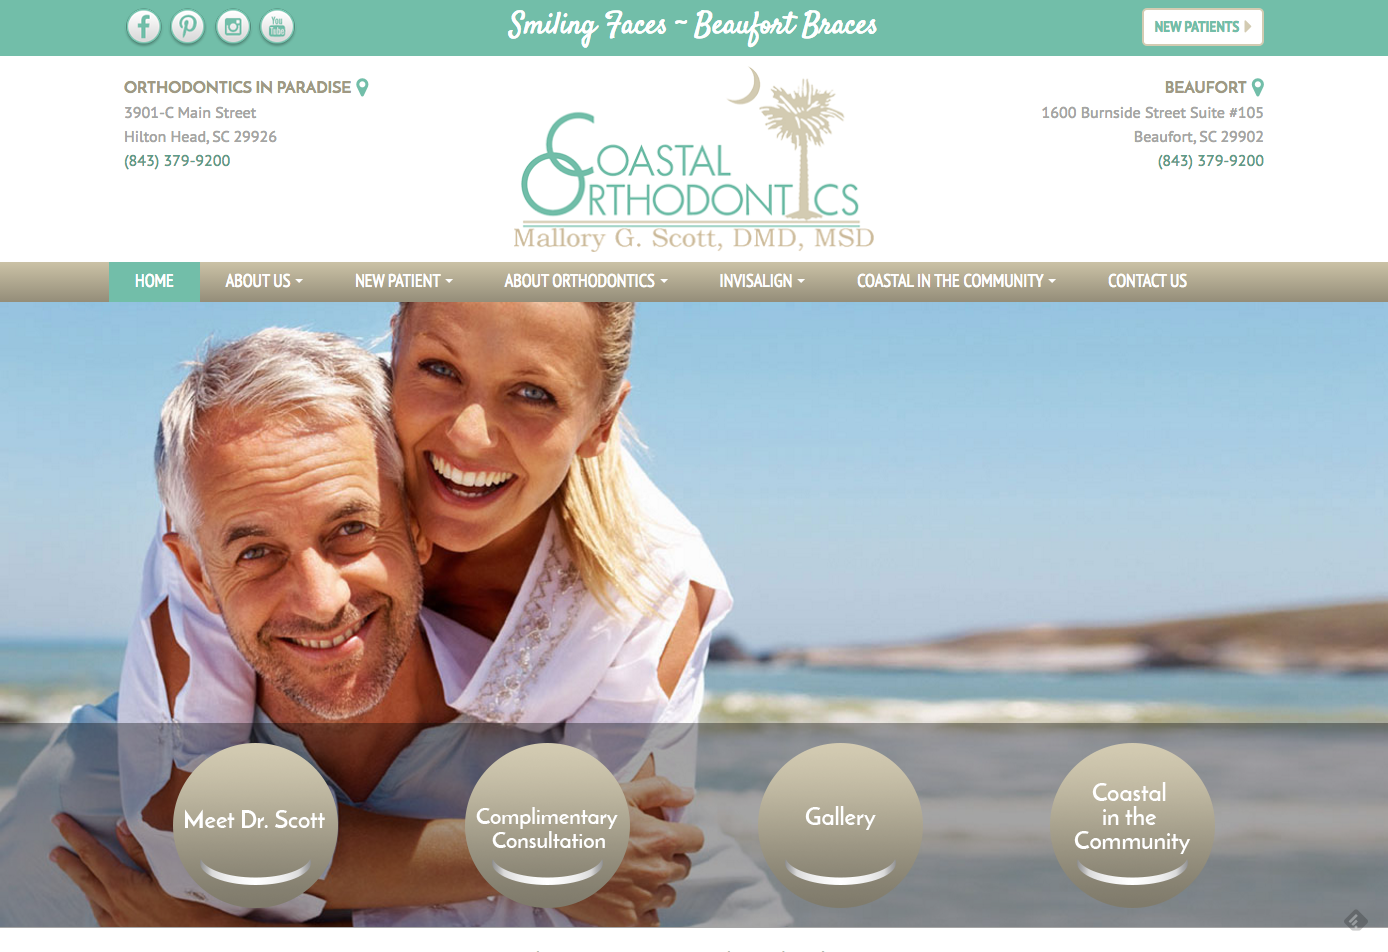 Coastal Orthodontics